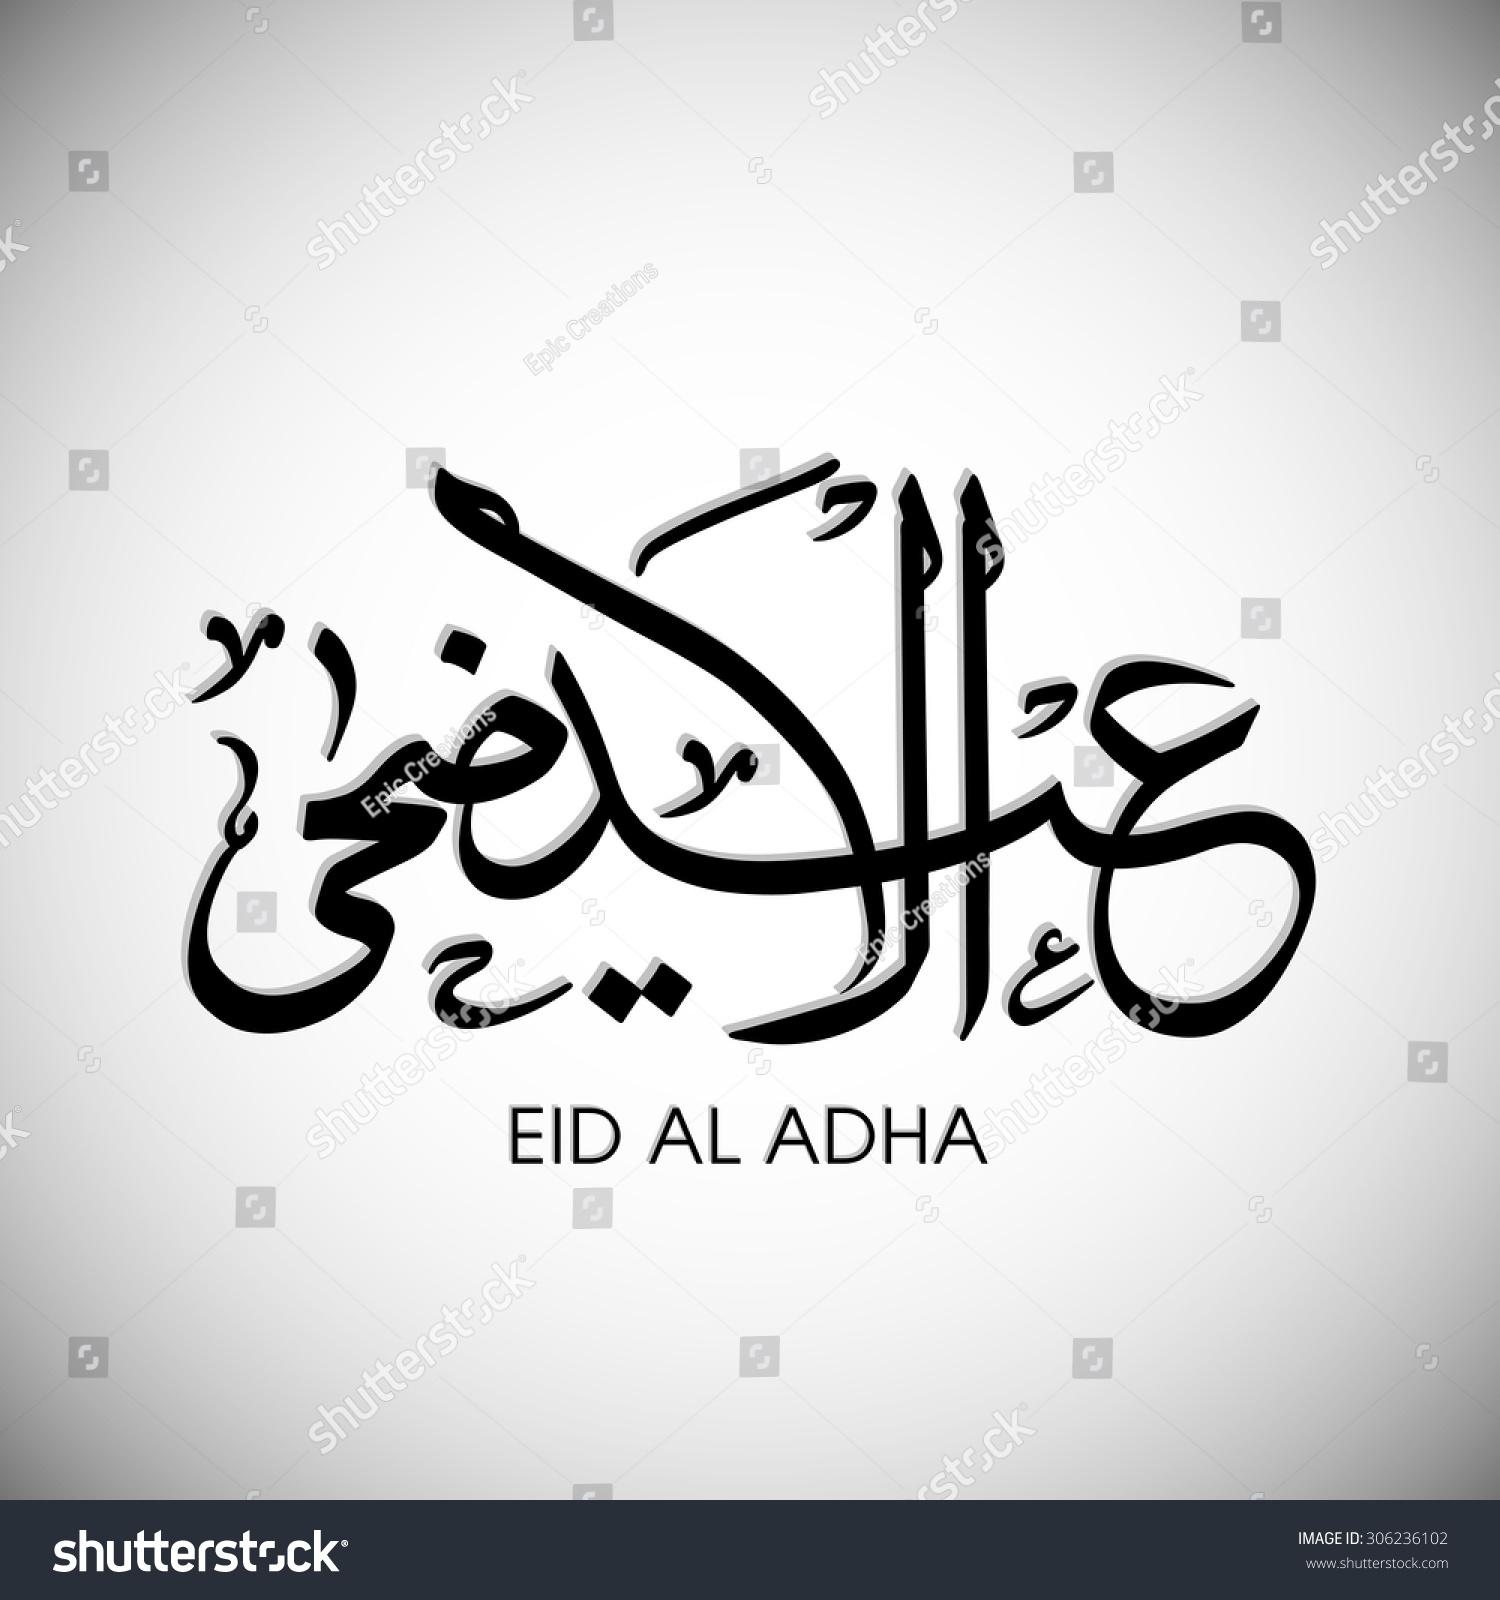 Calligraphy of arabic text eid al adha for the